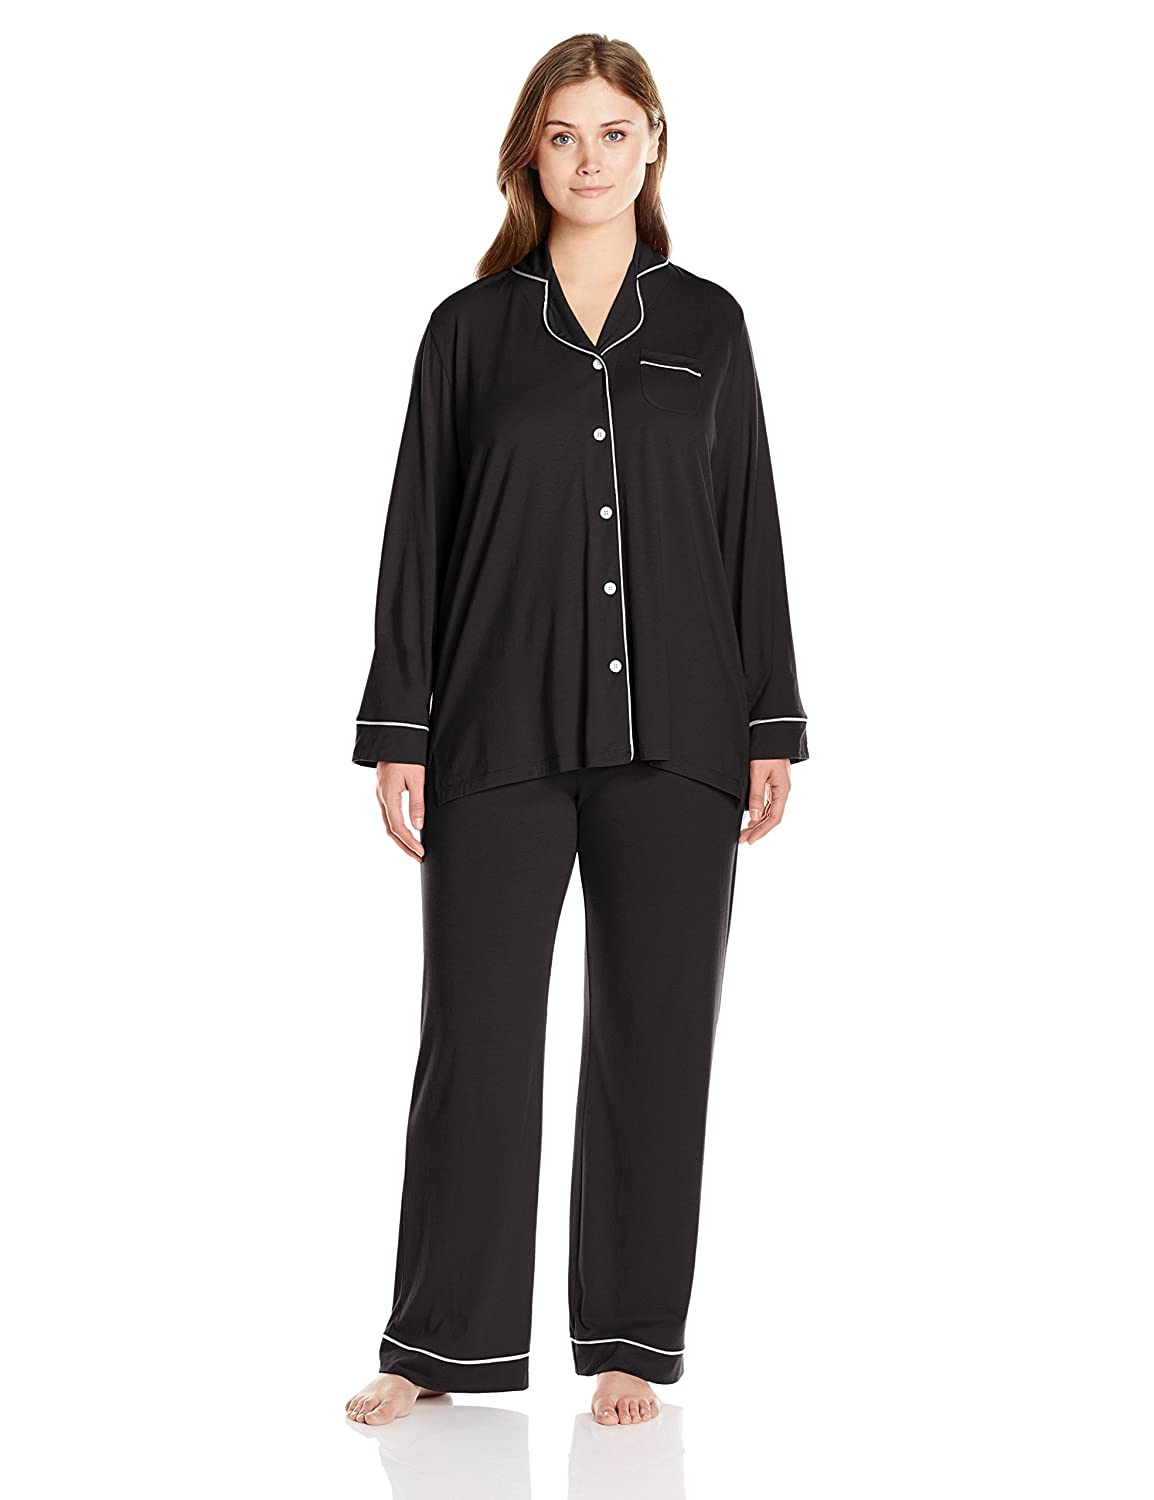 Cosabella Women's Plus-Size Bella Long Sleeve Top and Pant Pajama Set Cosabella Women' s IA AMORE9641P